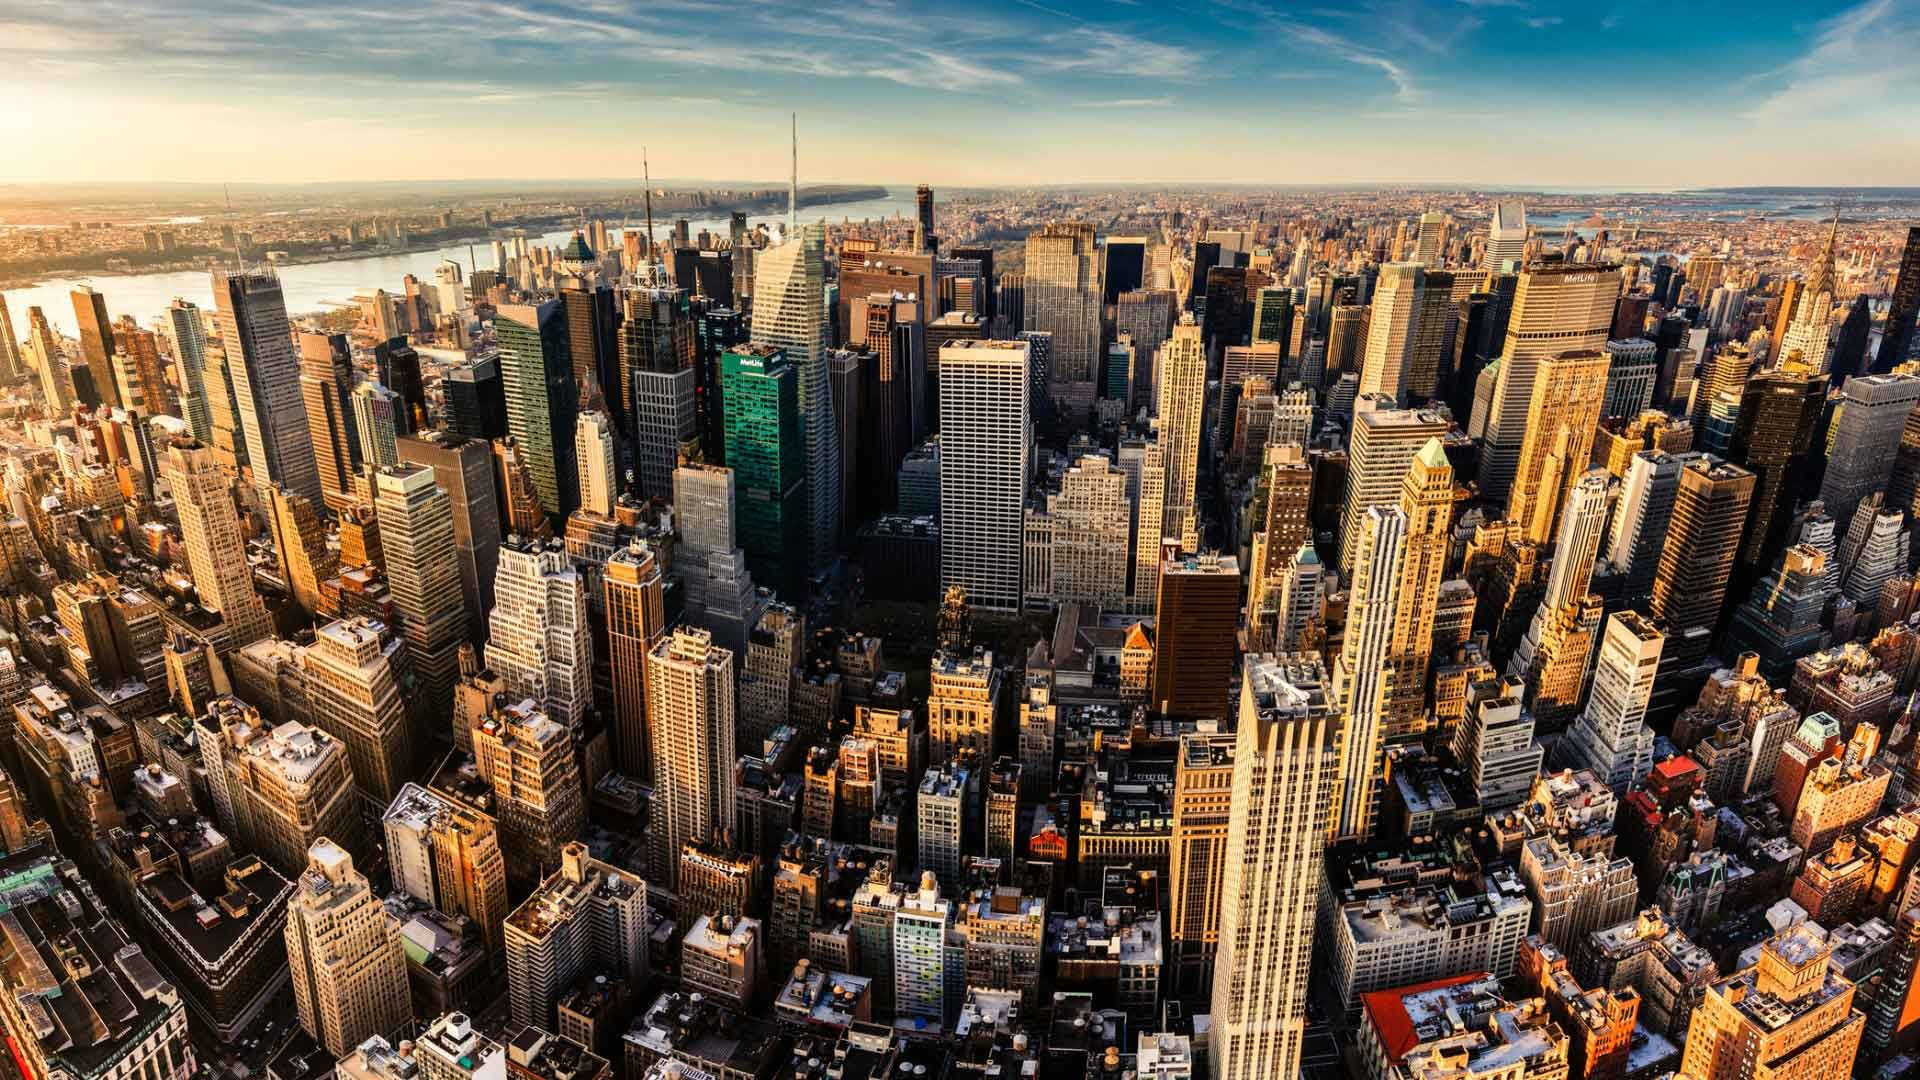 Ibis A New York book a hotel online with ibis. find out about our promotions